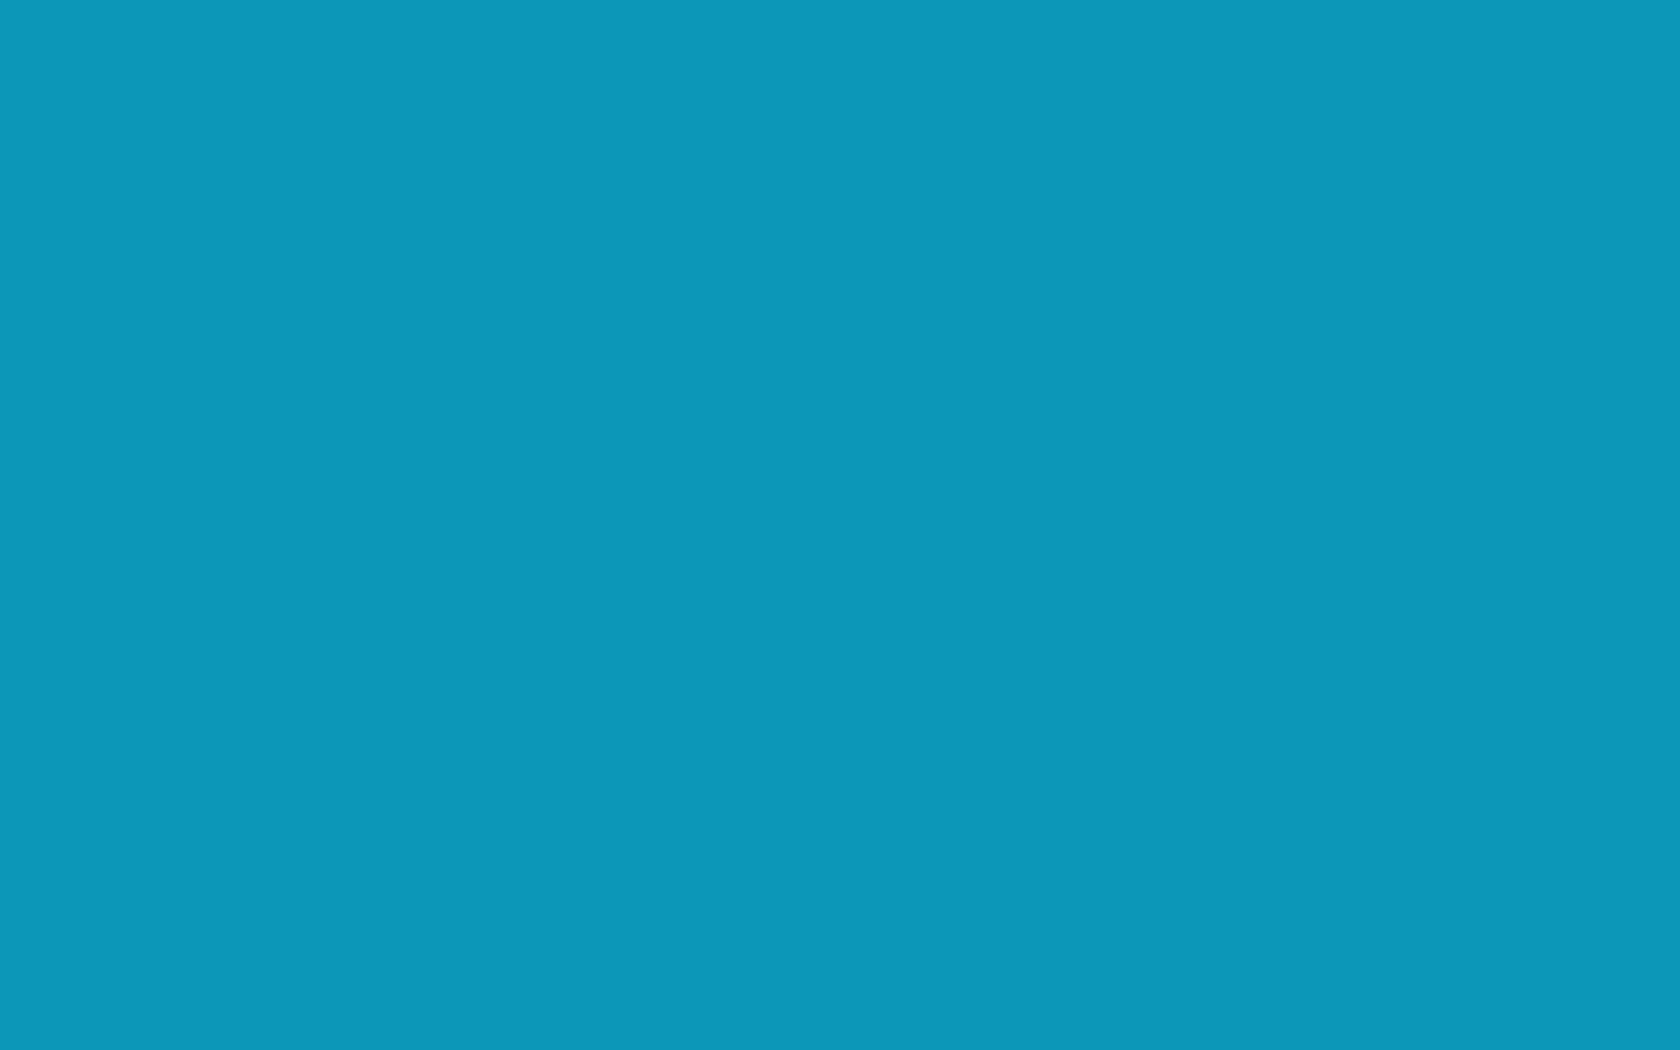 Privacypolicy >> 1680x1050 Blue-green Solid Color Background